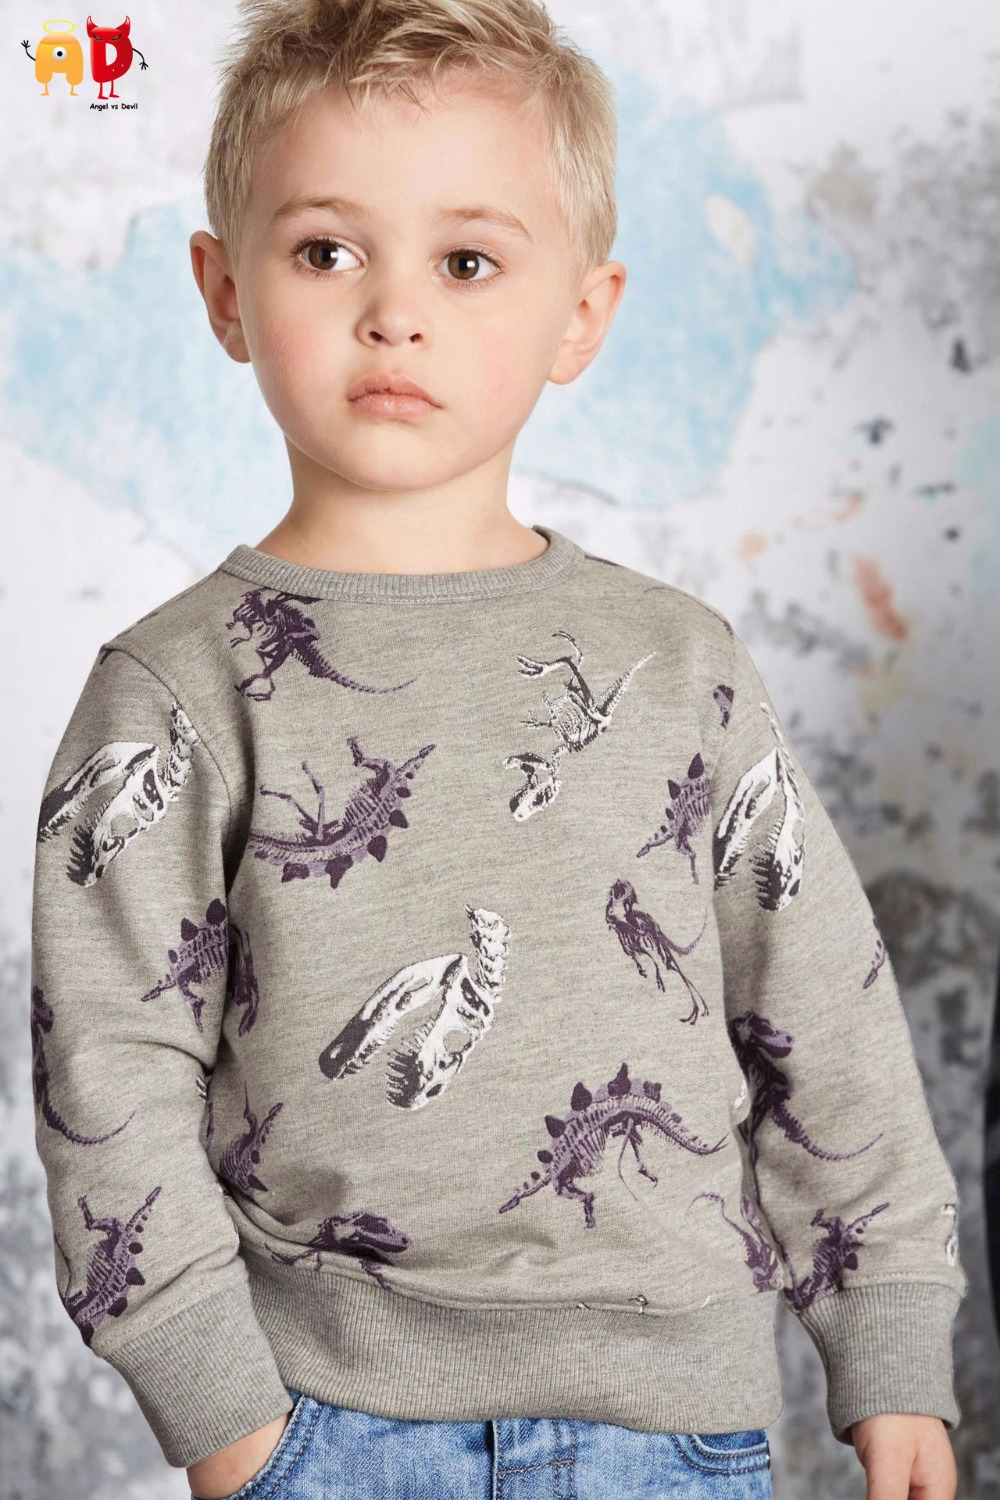 AD Cute Dinosaur Boys Sweatshirts Kids T-shirts Basic Clothes Spring Winter Childrens Clothing Tops Cotton Pullovers